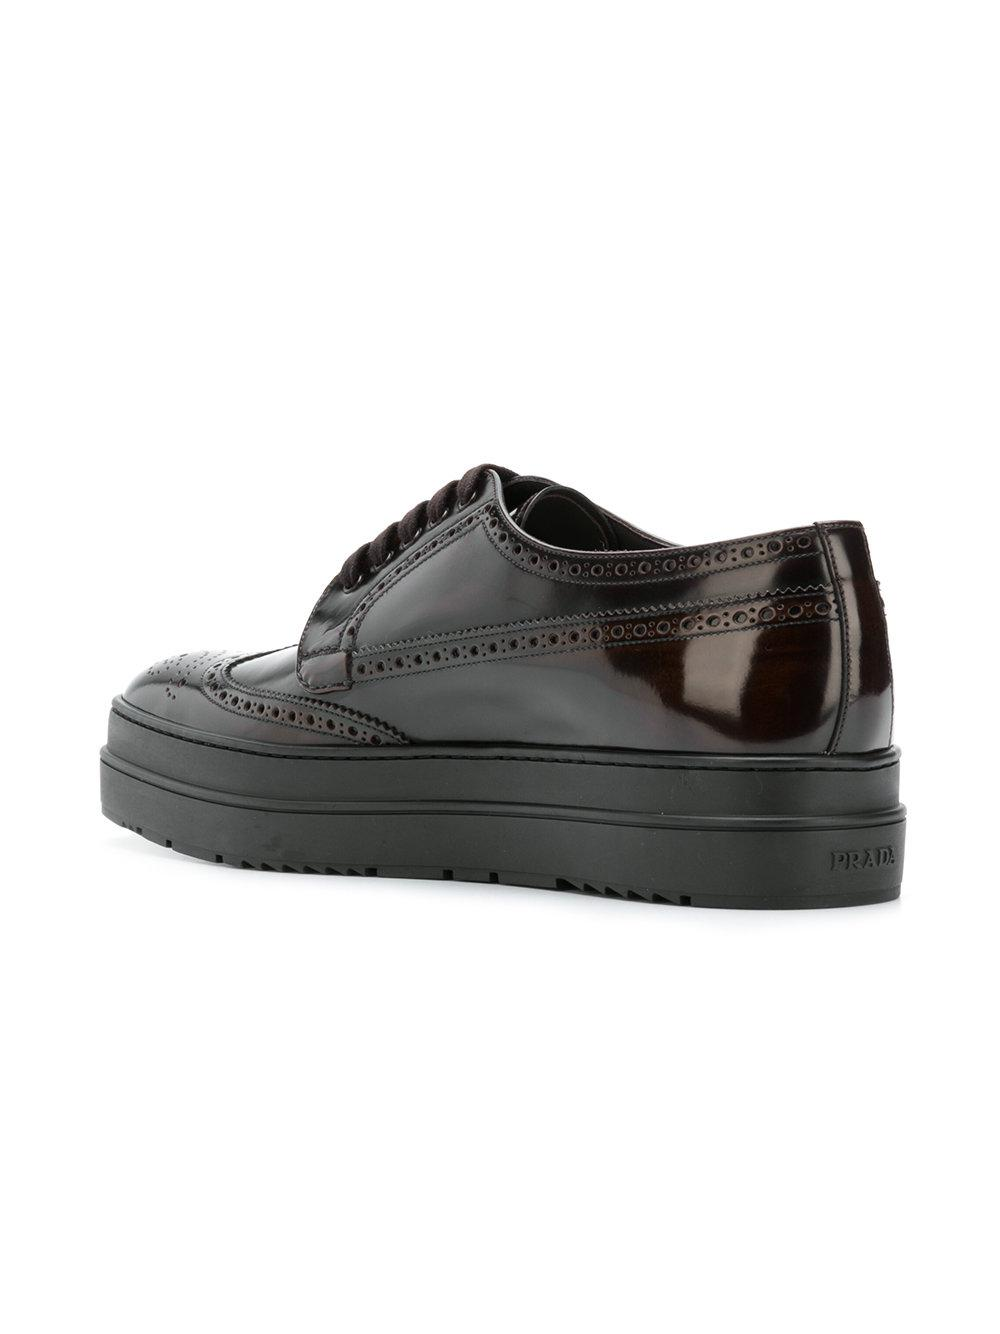 Prada Leather Platform Lace-up Shoes in Brown for Men